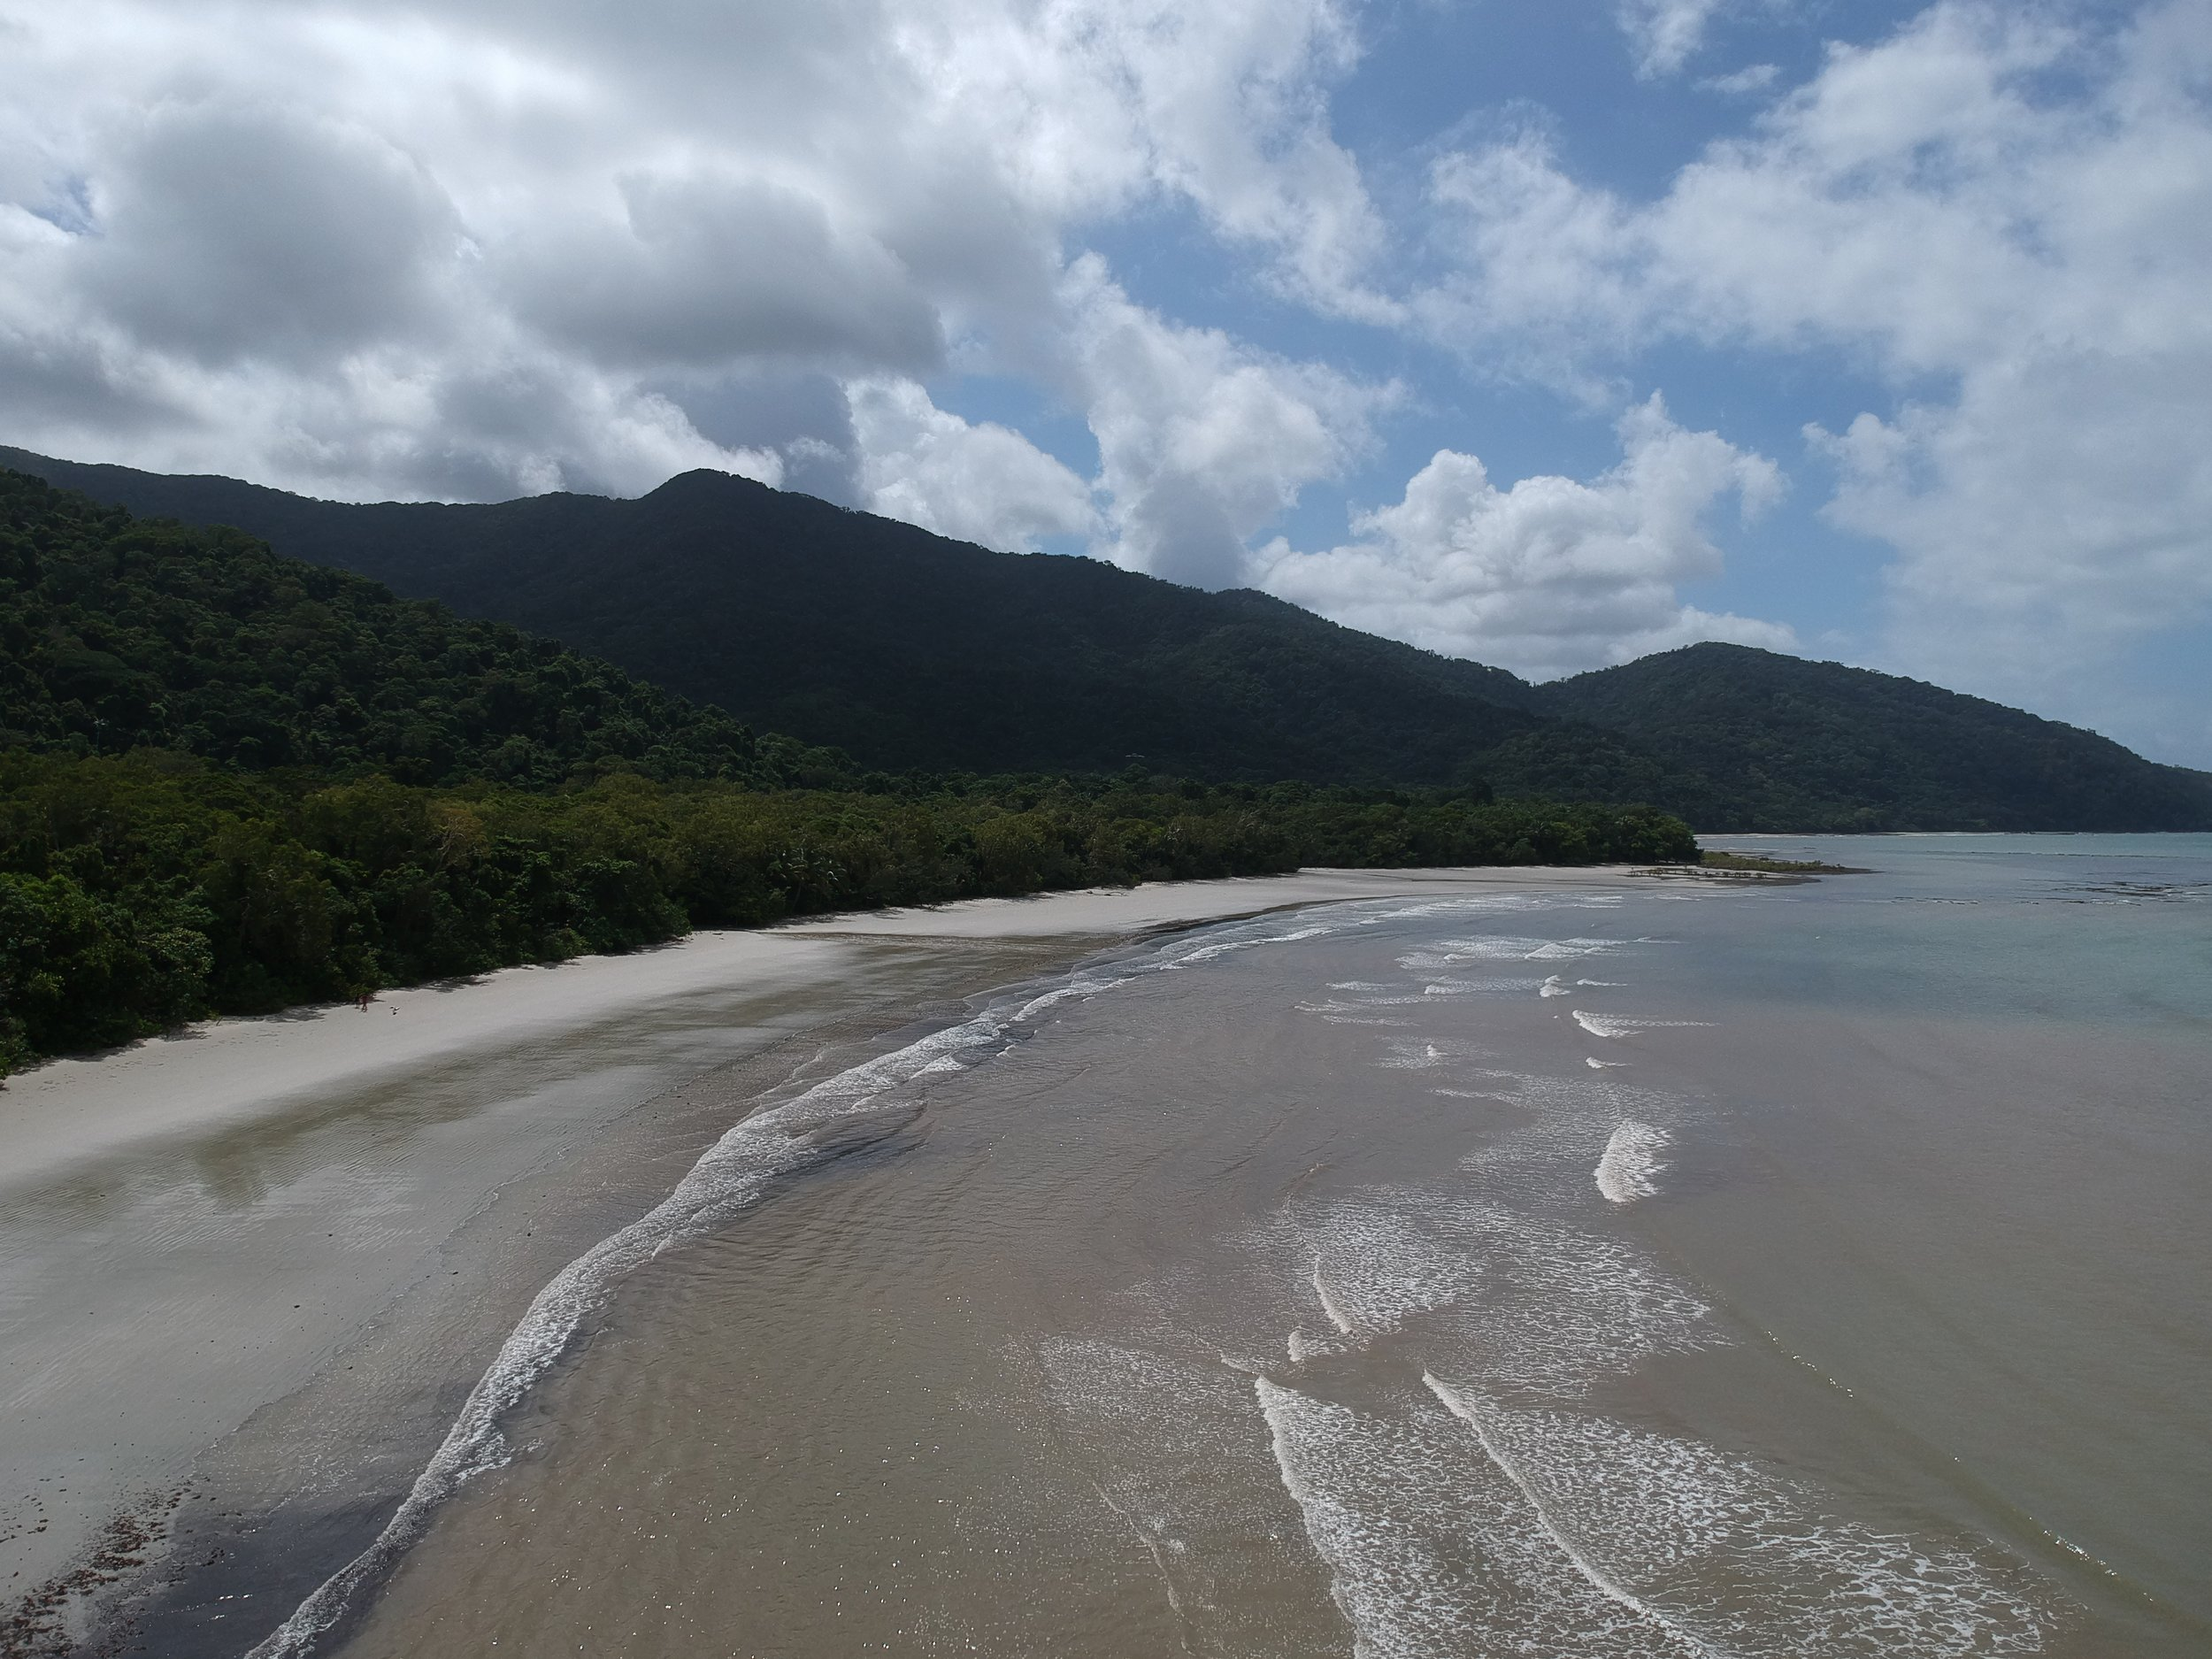 Cape Tribulation and Thornton Beach are worth stopping at!